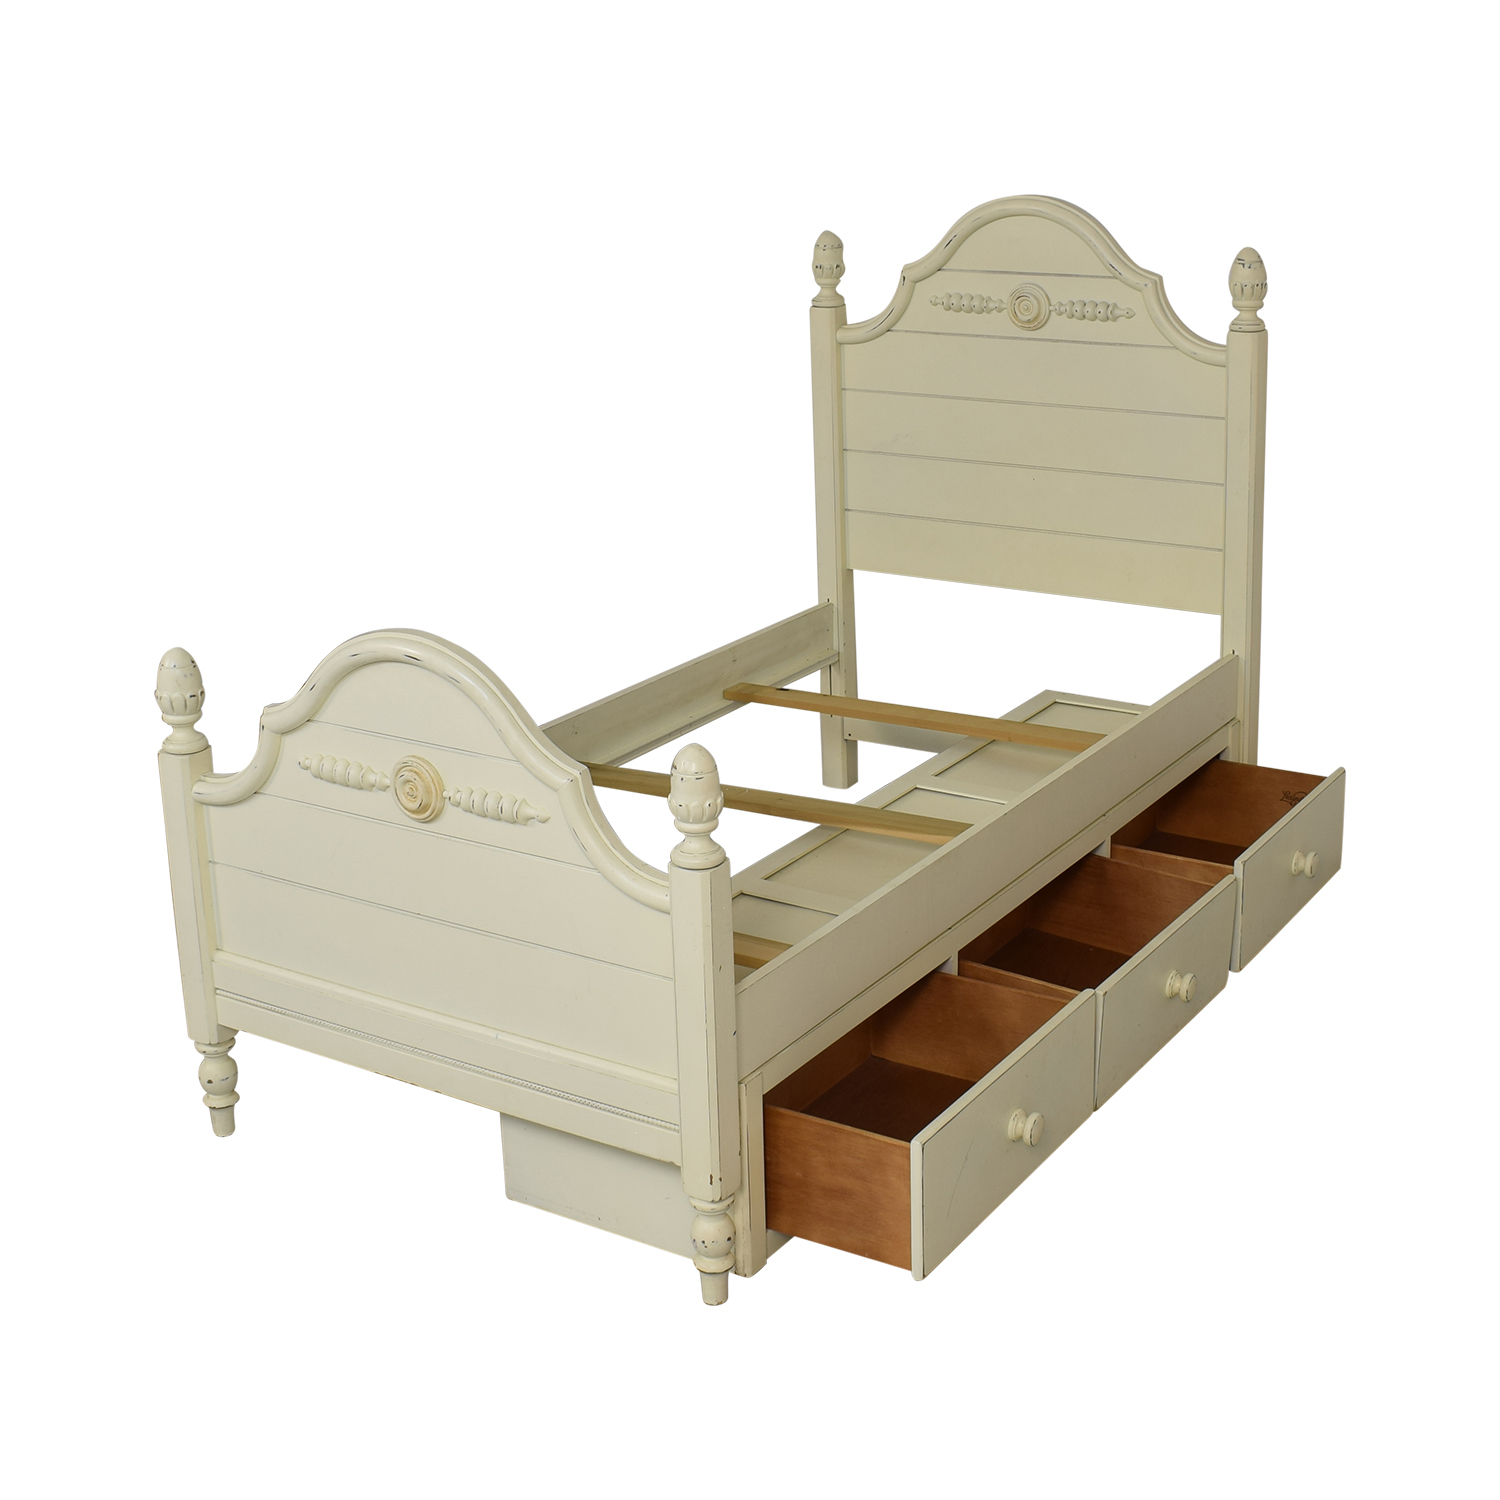 Lexington Furniture Distressed Twin Bed with Storage / Bed Frames